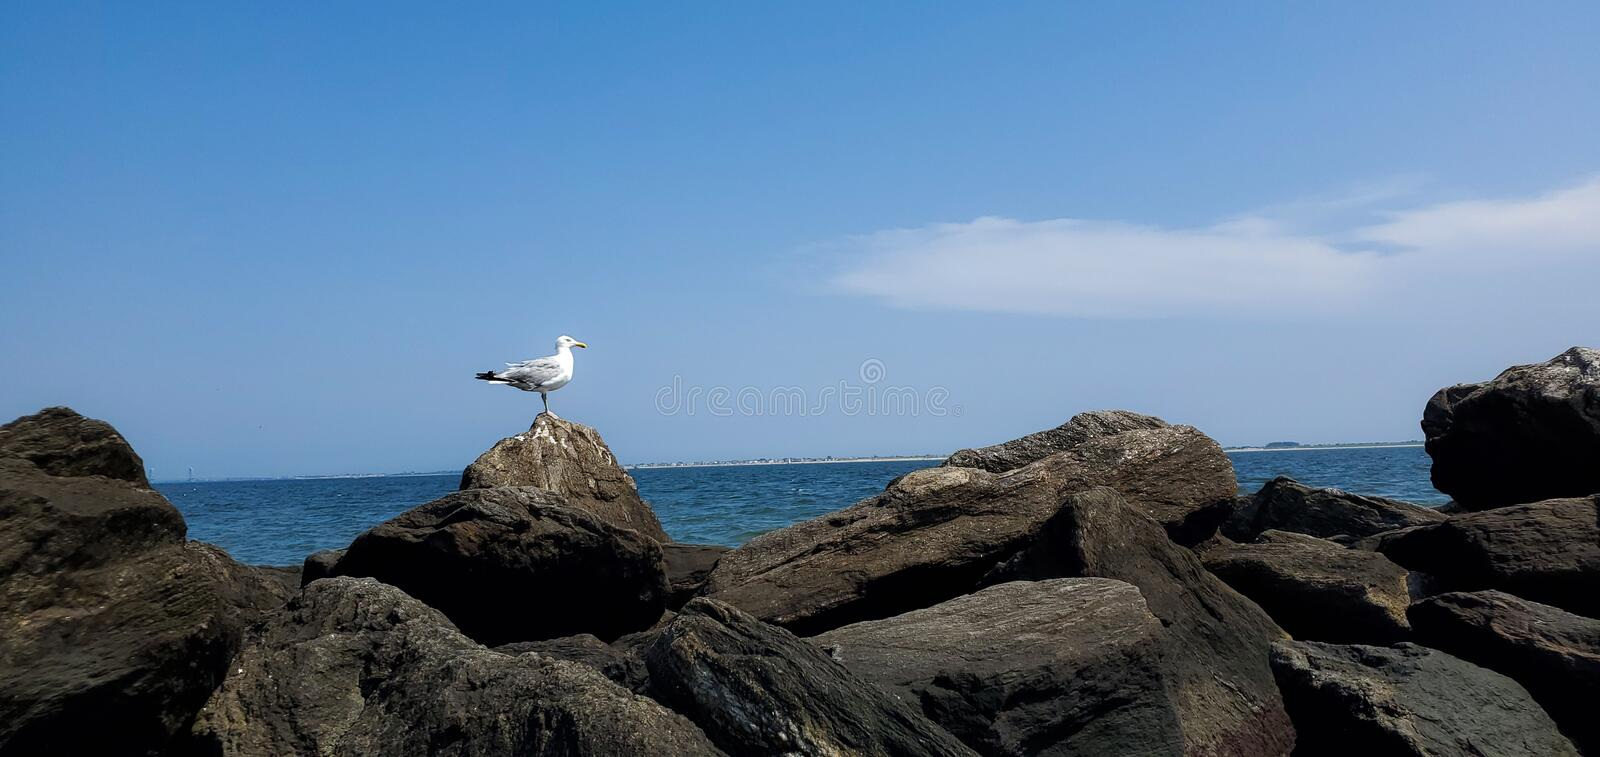 Seagull sitting on rocks by ocean stock photography